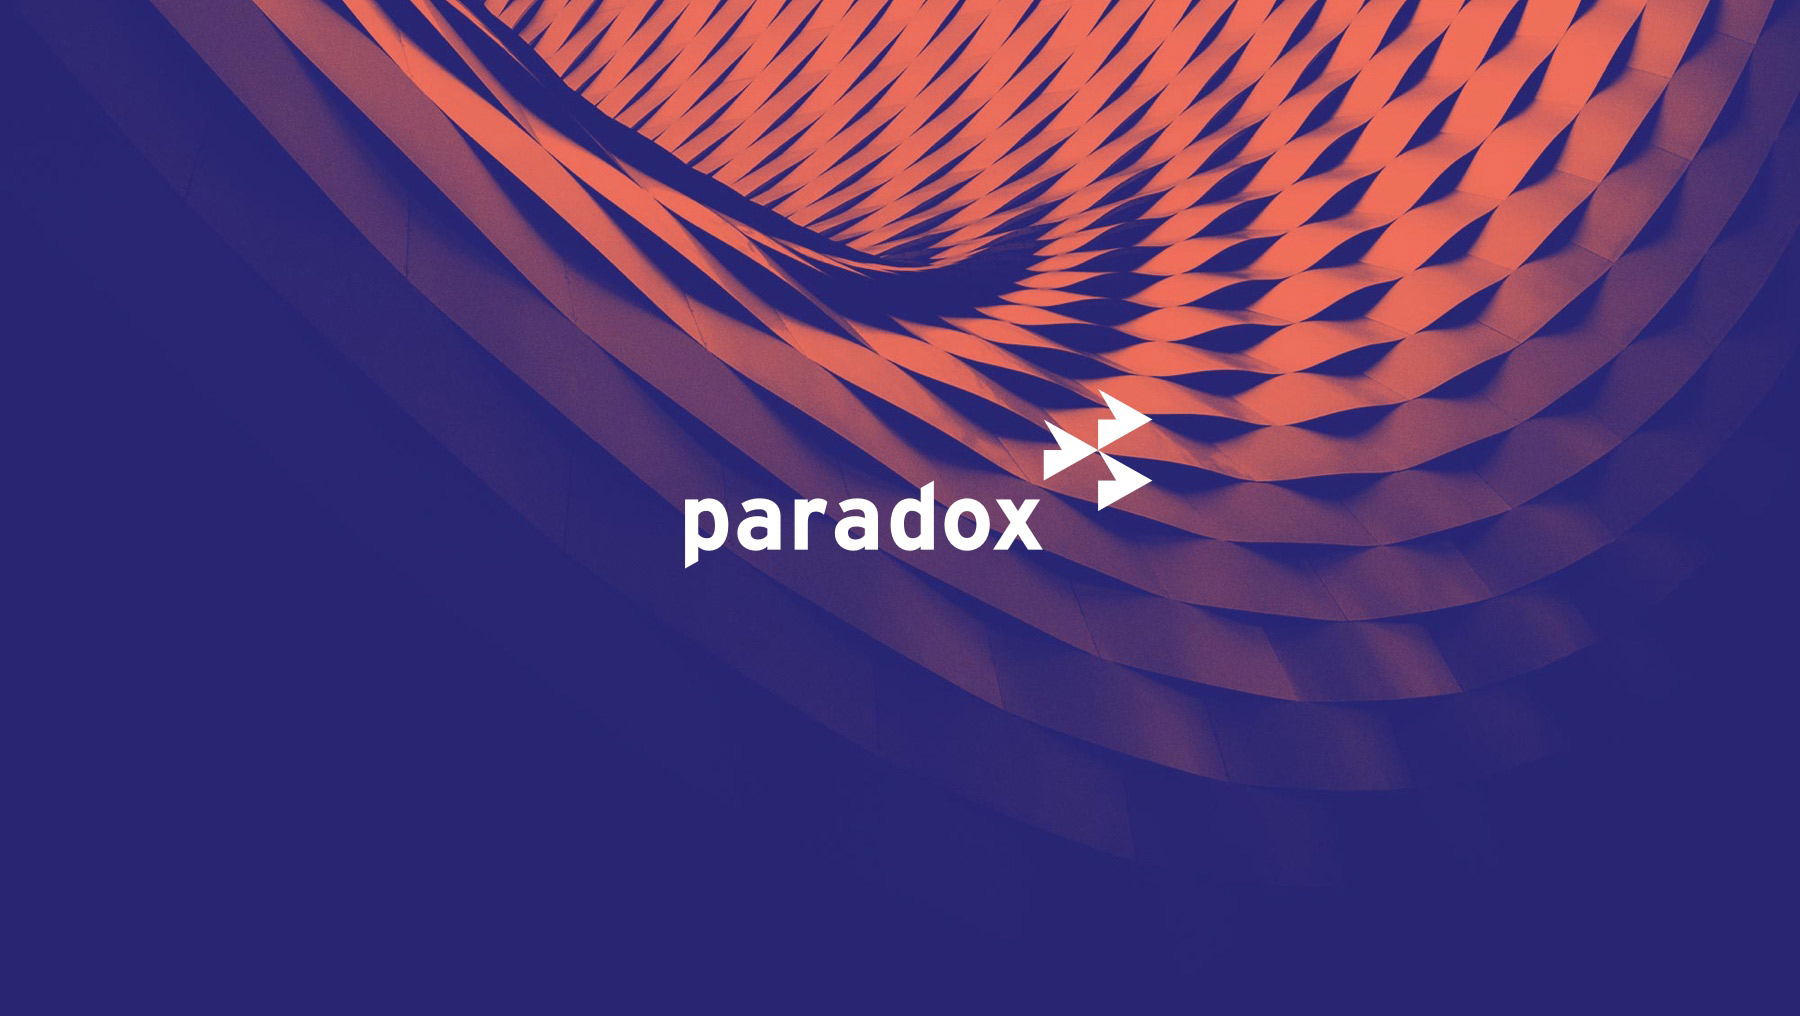 paradox retail logo with textured background